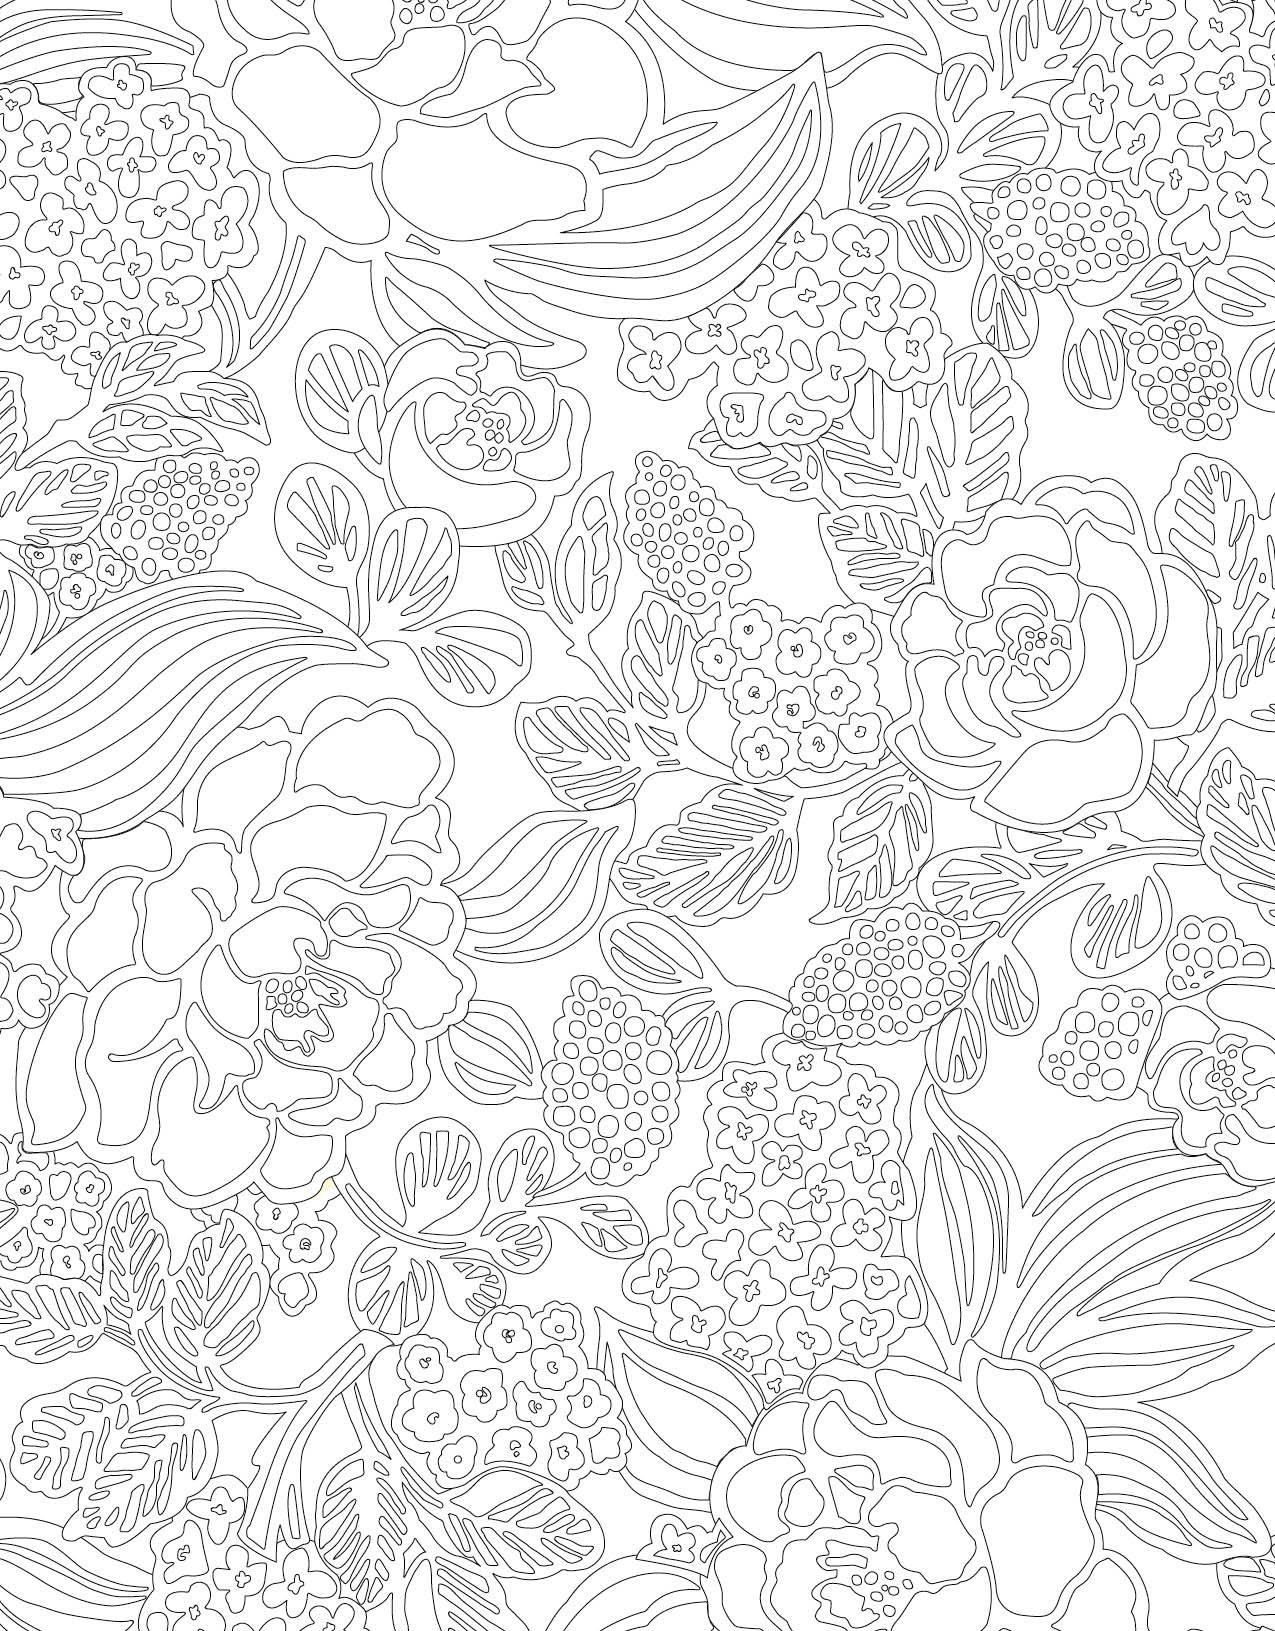 Vera Bradley Coloring Pages  to Print 7e - Save it to your computer